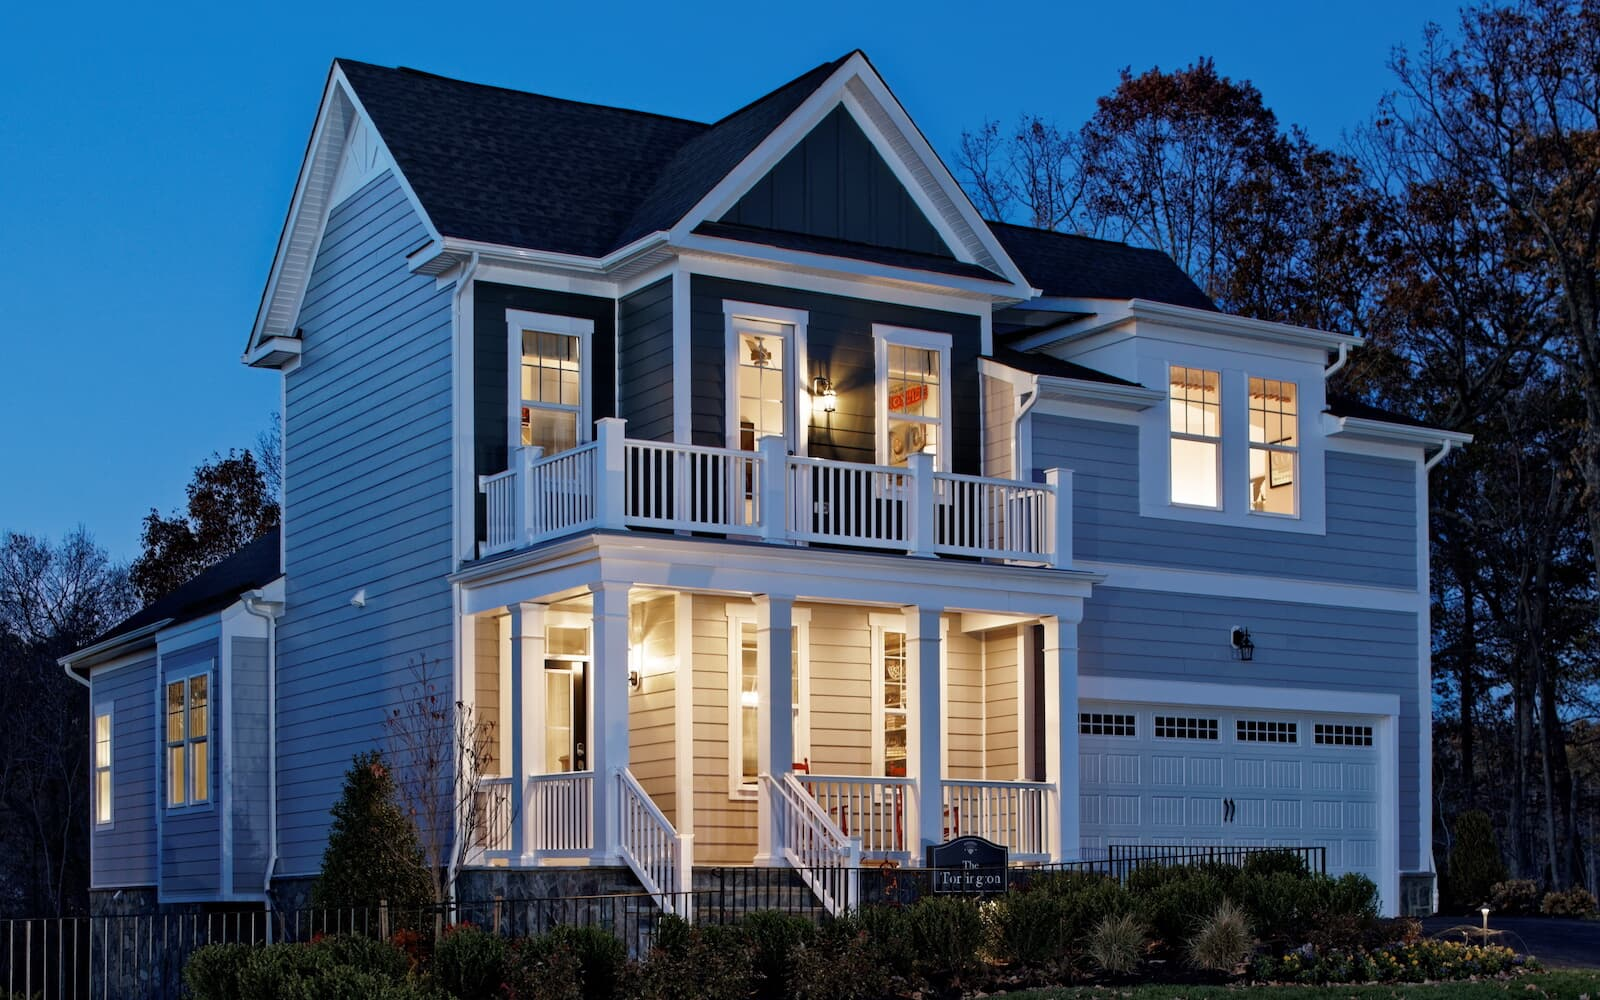 Torrington-exterior-single-family-homes-potomac-shores-va-potomac-shores-brookfield-residential